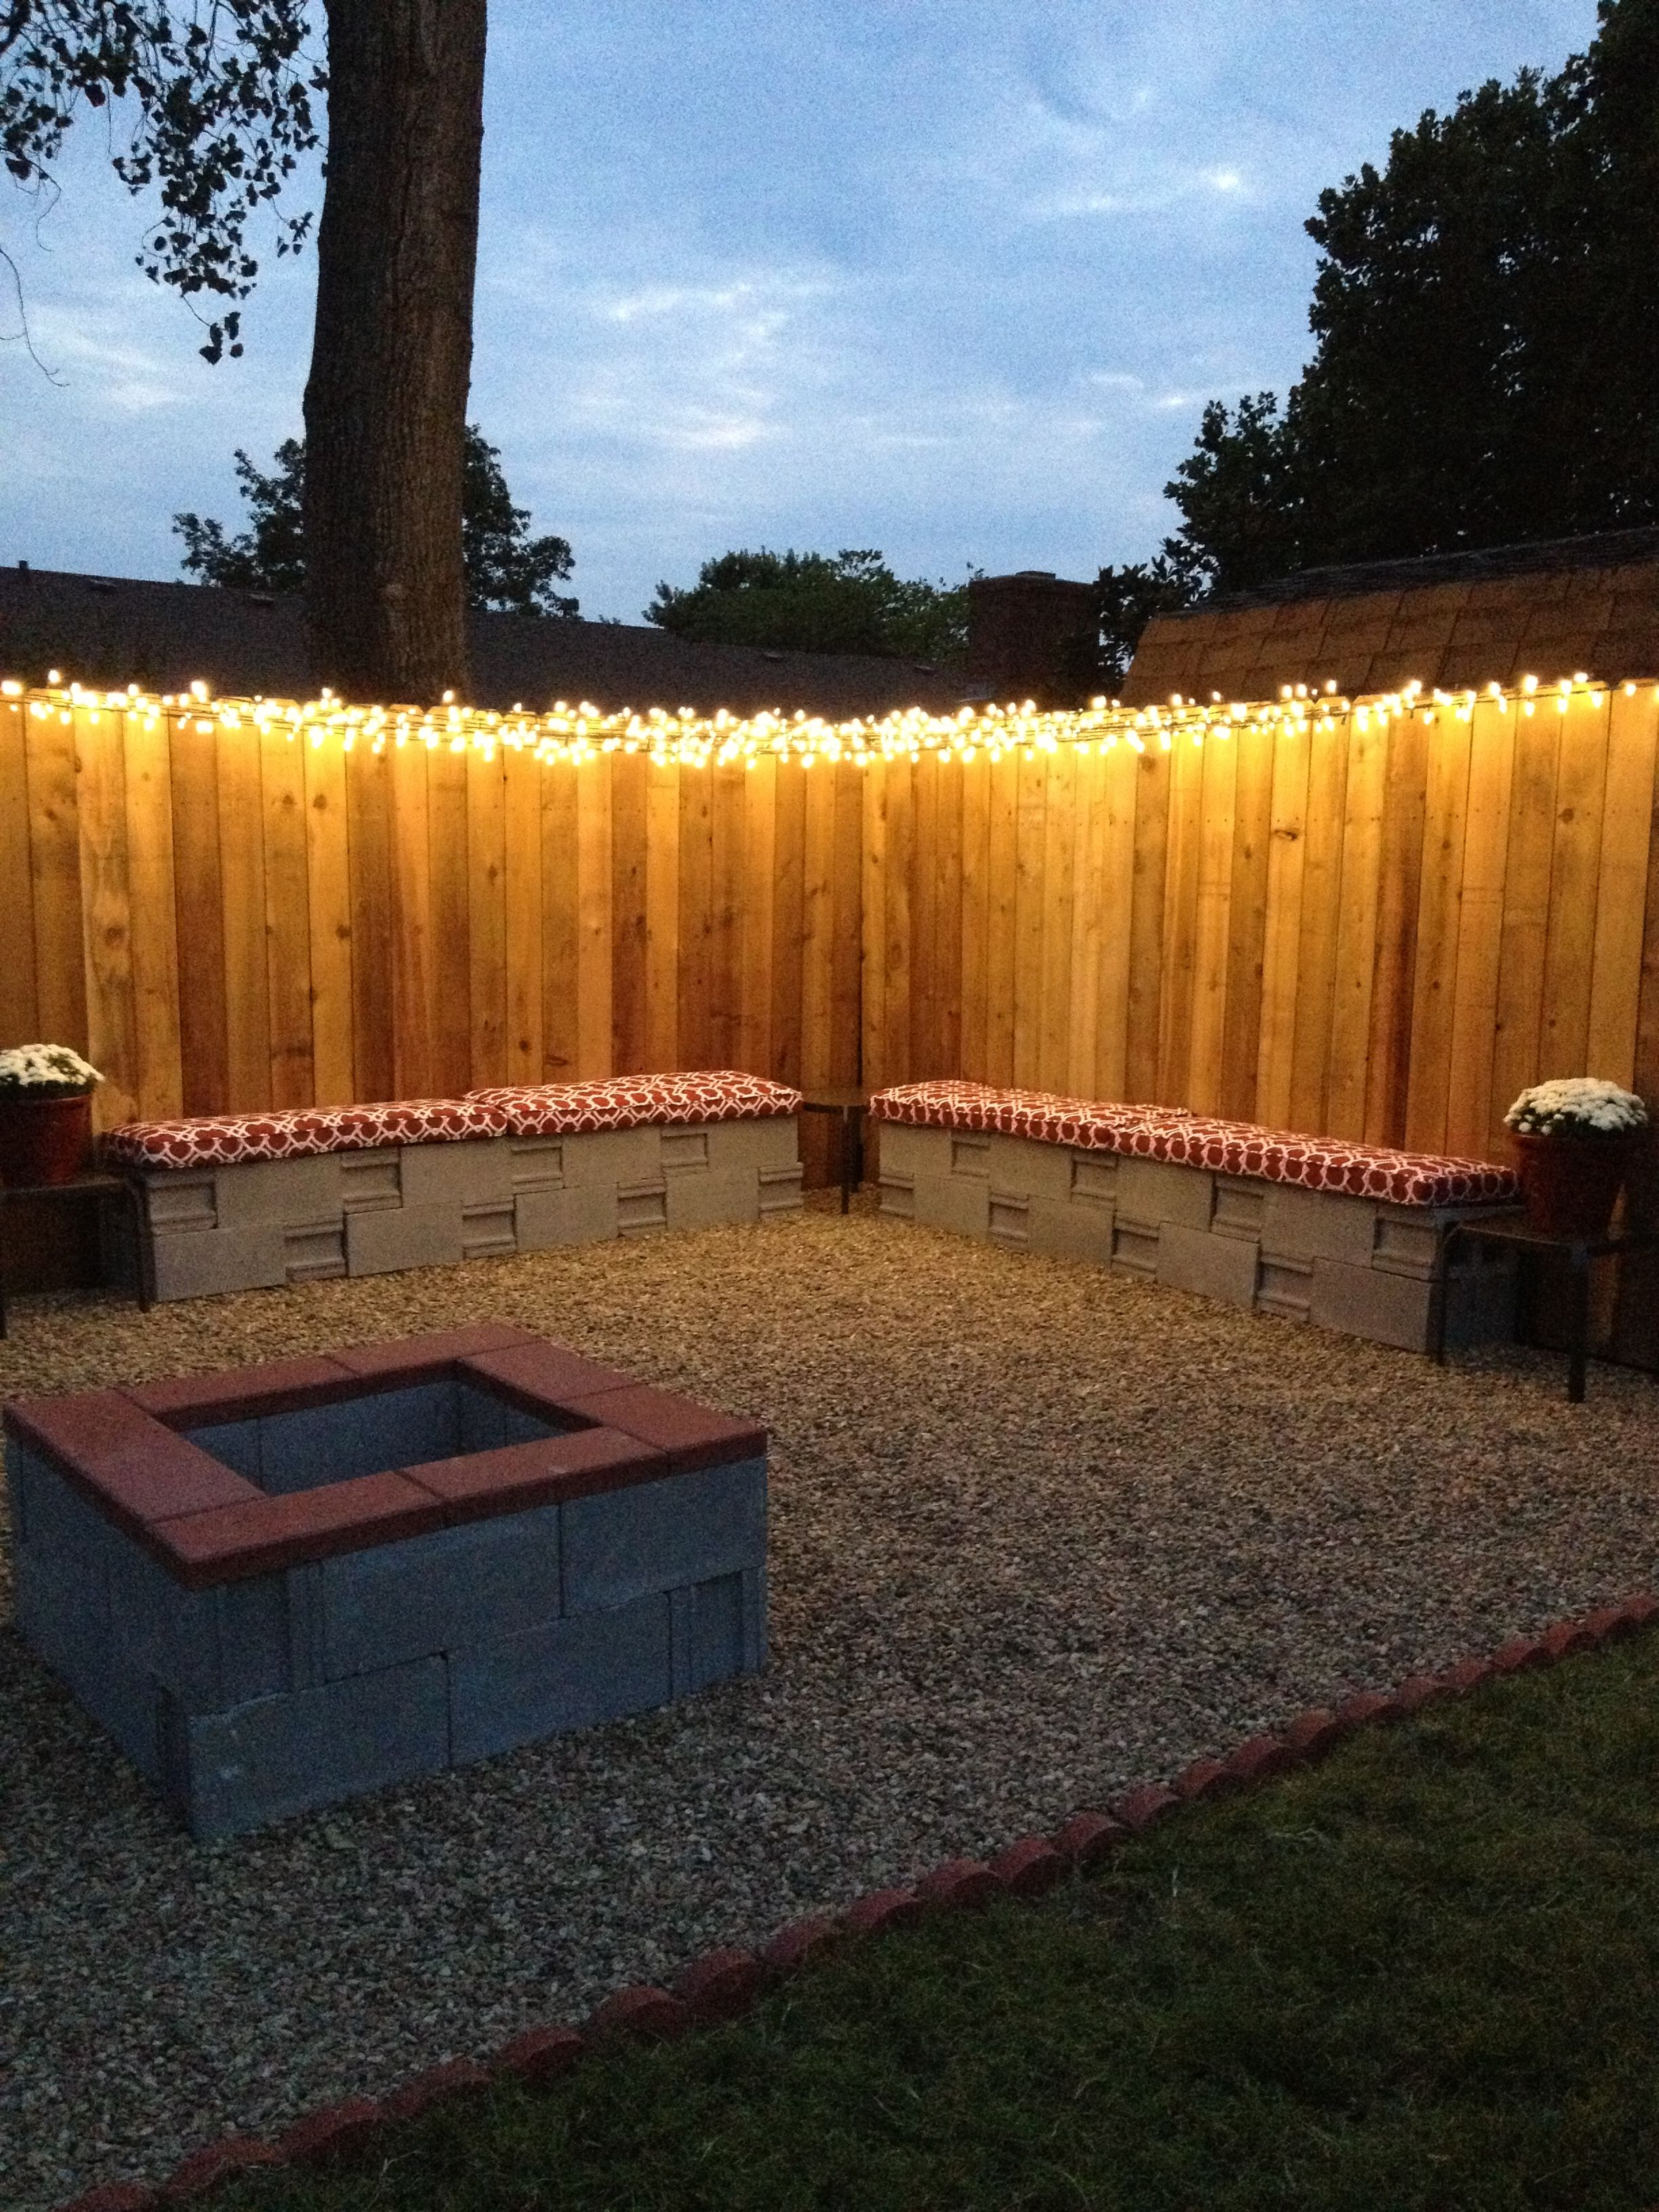 14 Brilliant Diy Projects Using Cinder Blocks To Perfectly Compliment Any Backyard Simple Outdoor Seating Backyard Backyard Landscaping